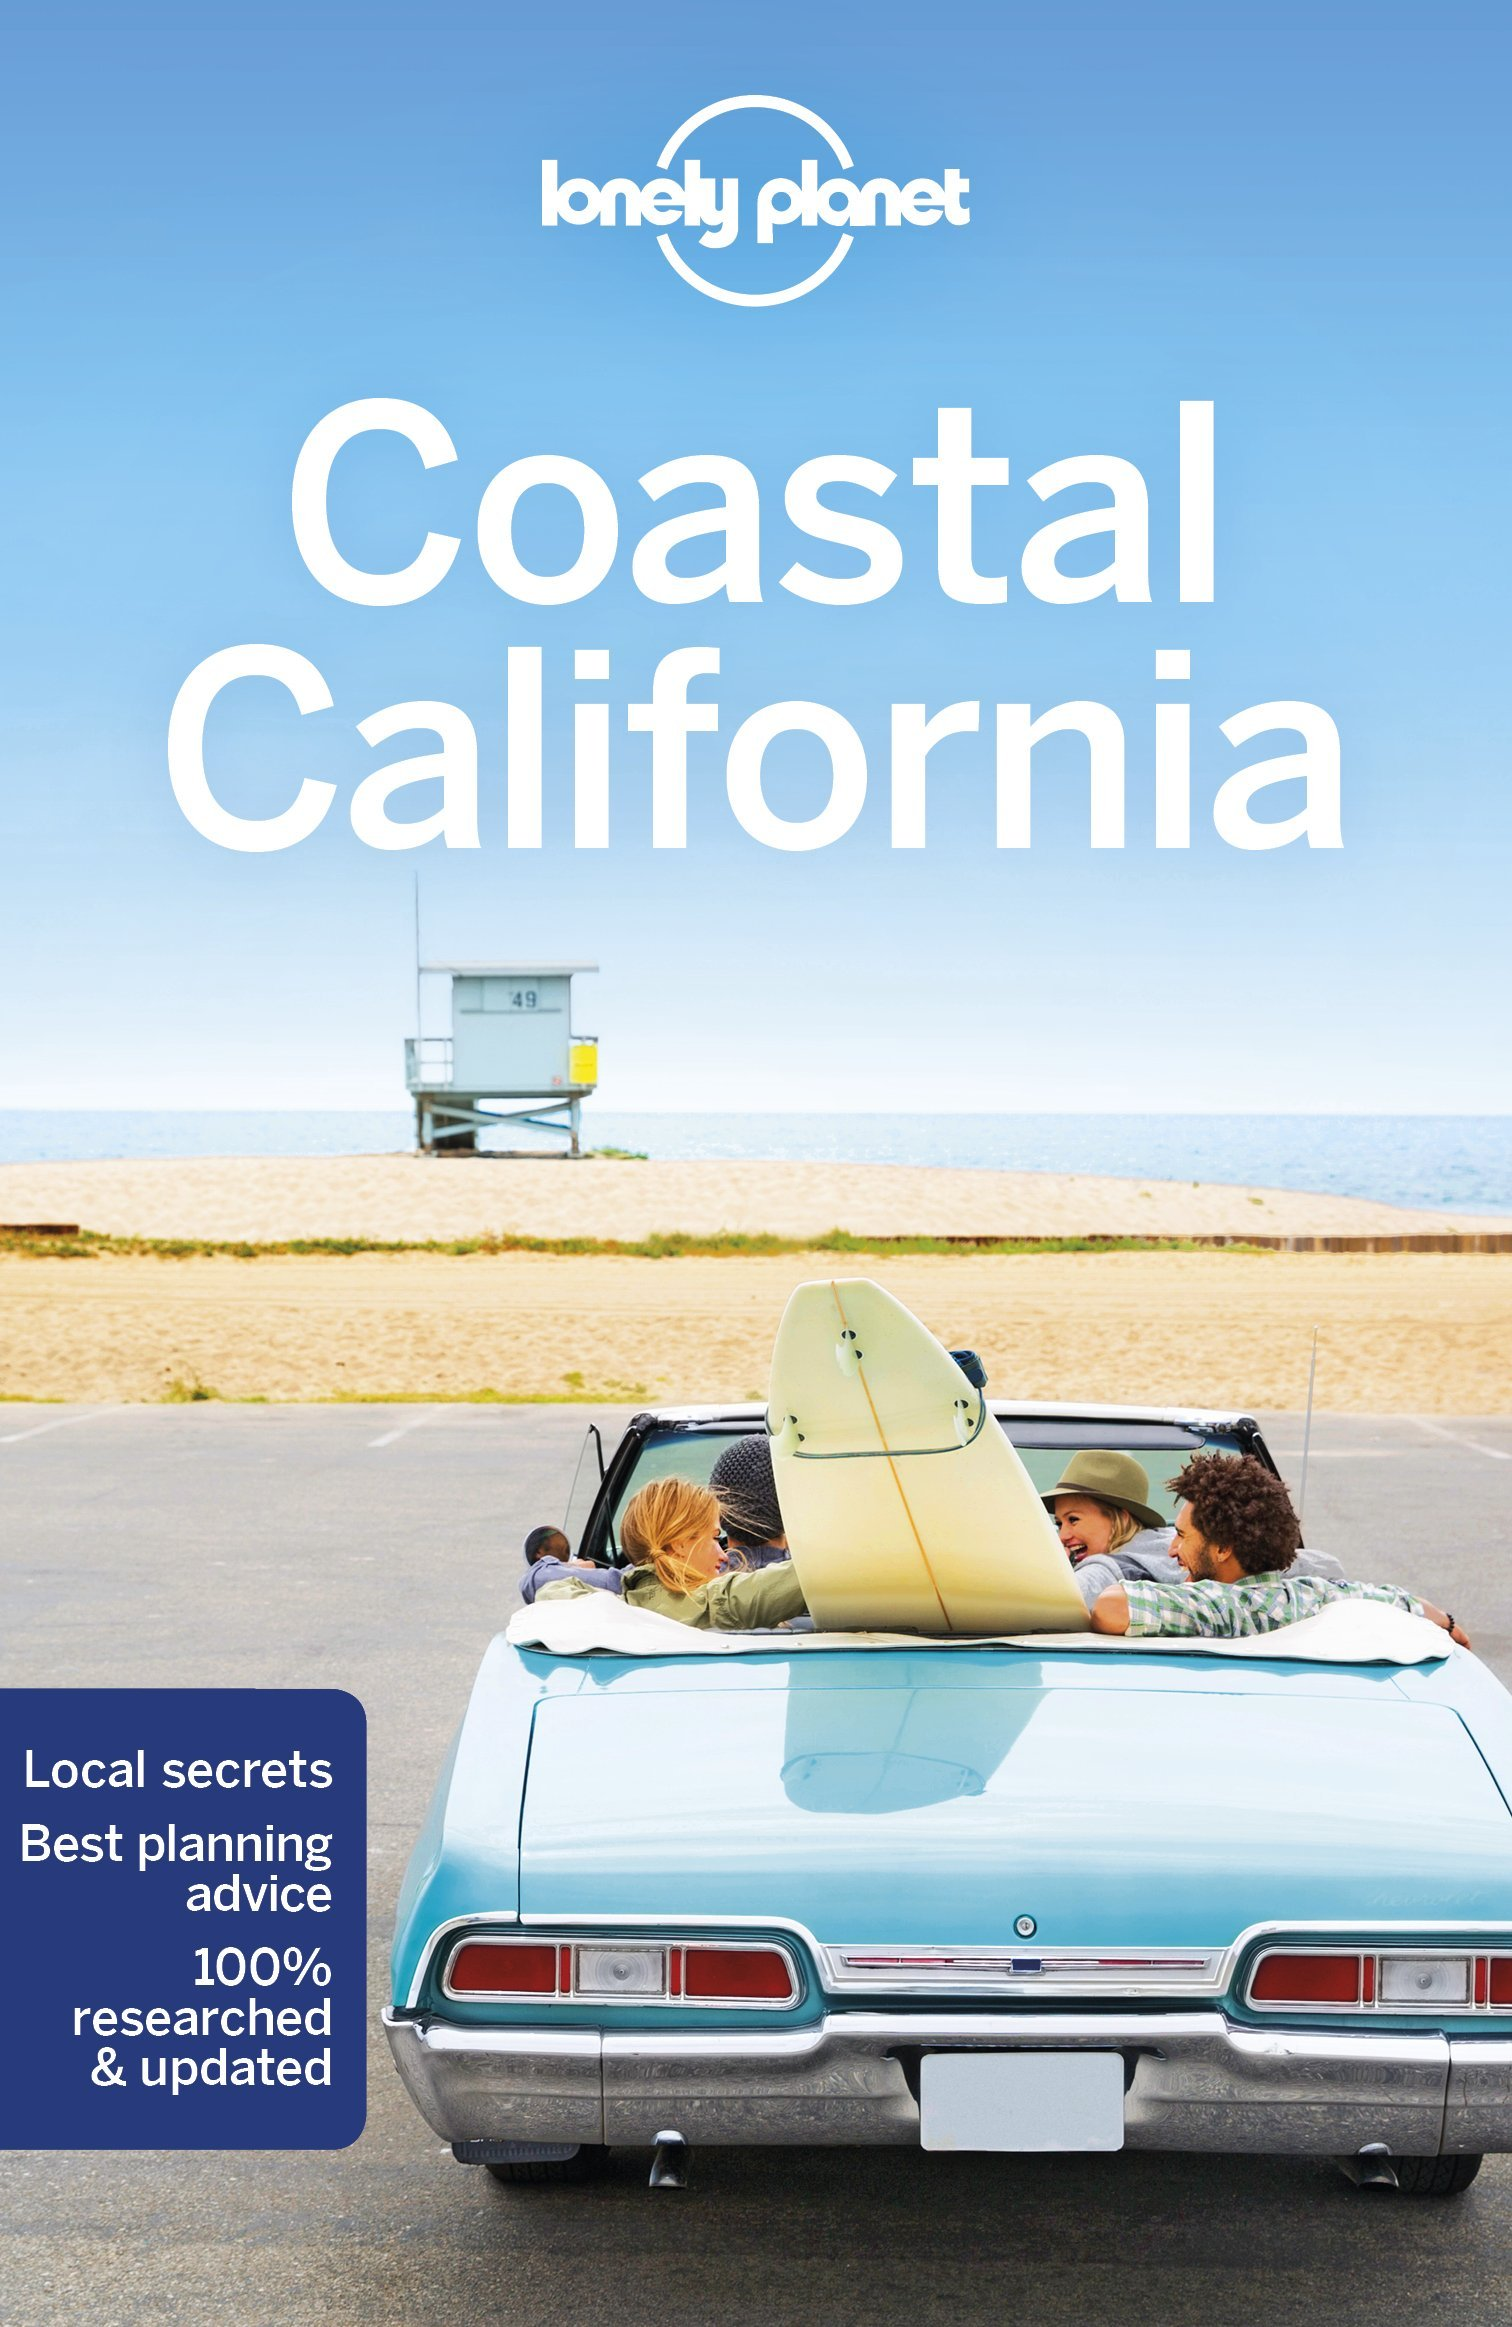 Lonely Planet Coastal California 9781786573605  Lonely Planet Travel Guides  Reisgidsen California, Nevada